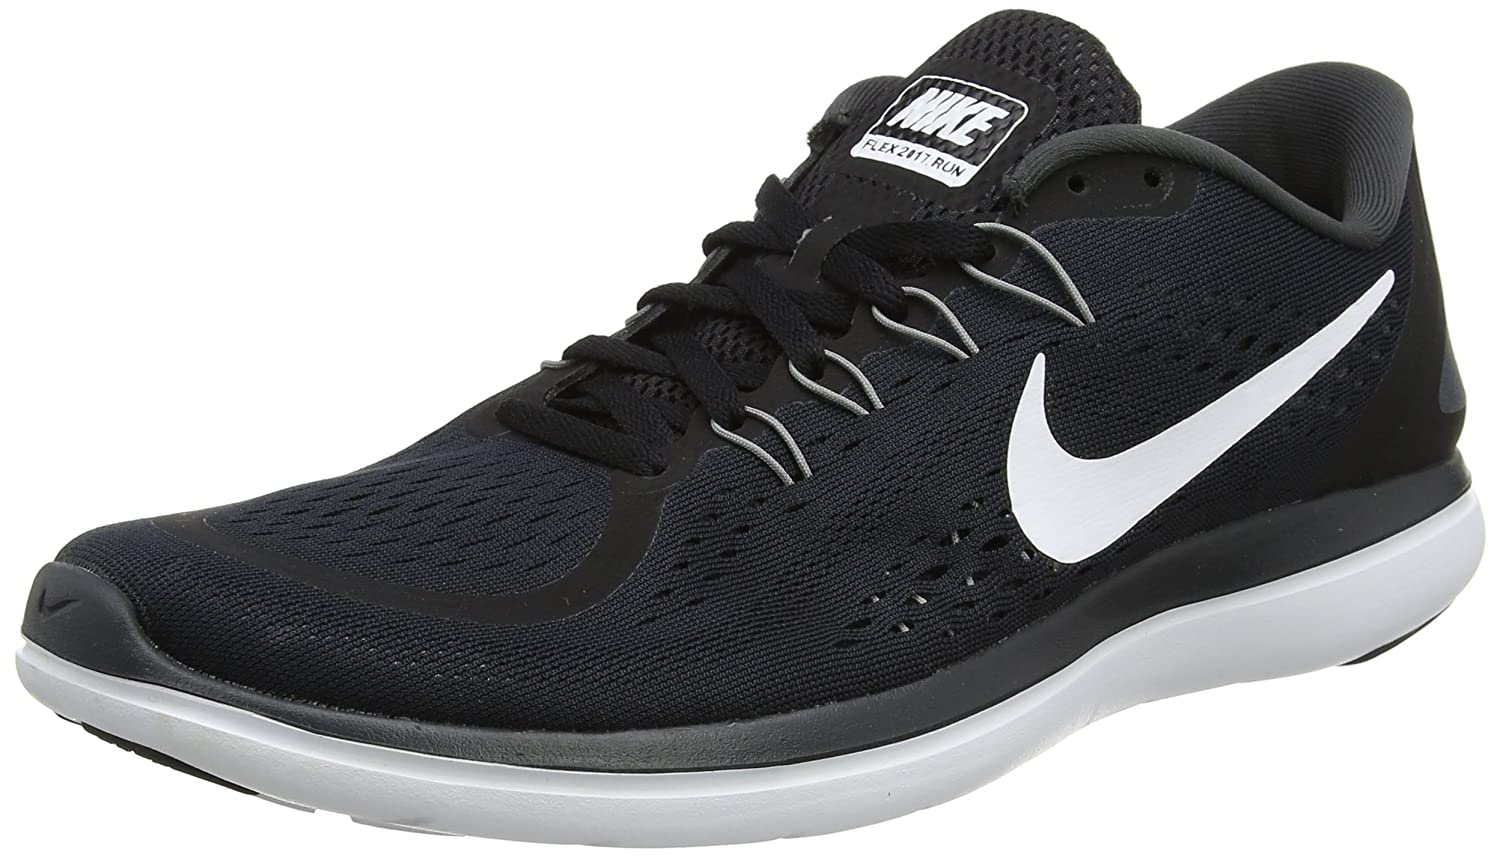 a028b3048e3c2 Nike Men s Flex 2017 Rn Black White Anthracite Running Shoe 9 Men US  Buy  Online at Low Prices in India - Amazon.in